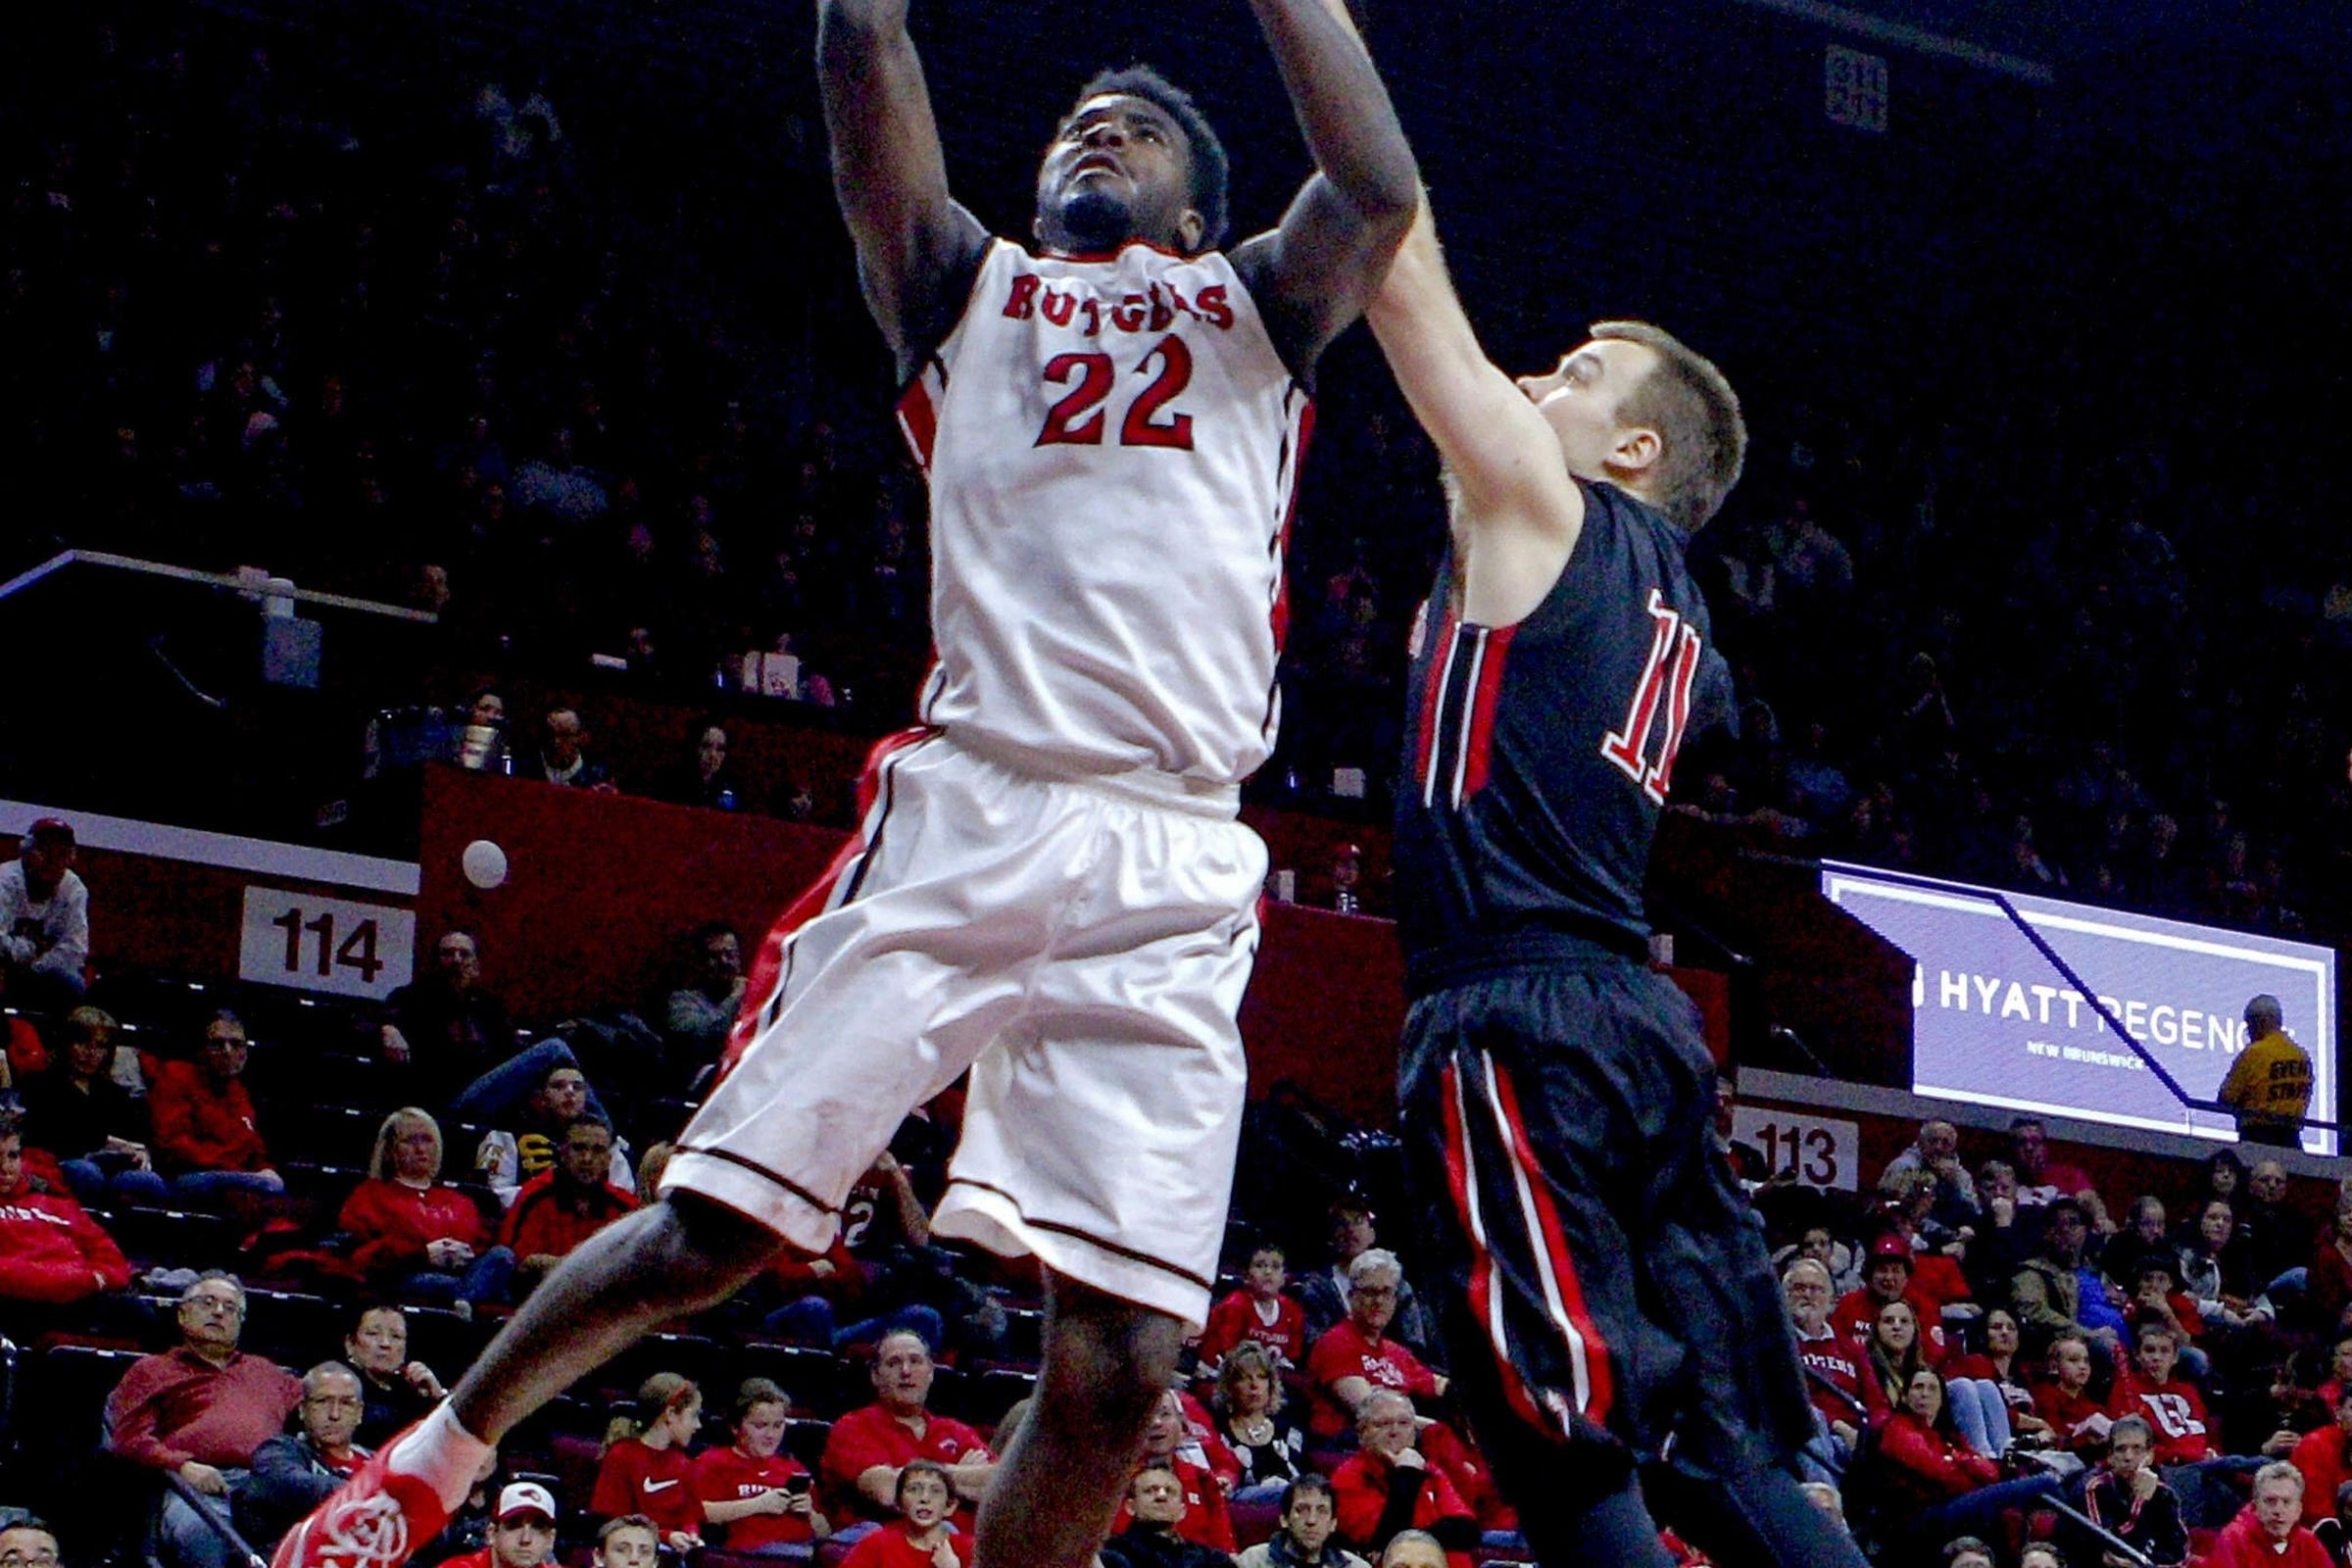 Rutgers Scarlet Knights Basketball Rutgers Men's Basketba...